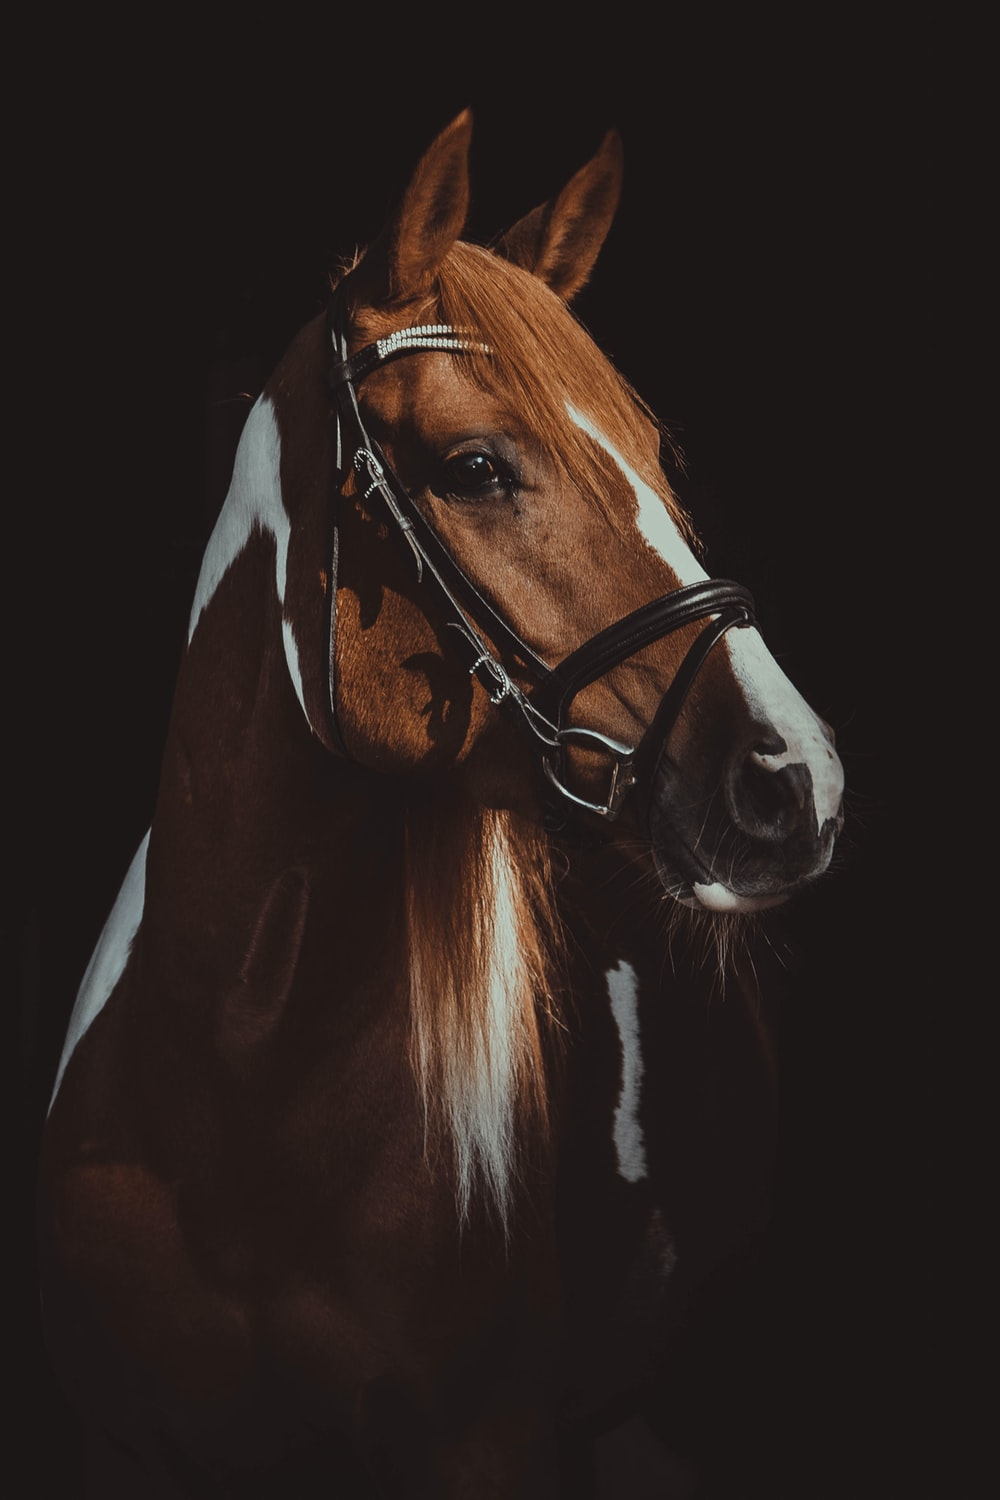 brown and white horse on focus photography